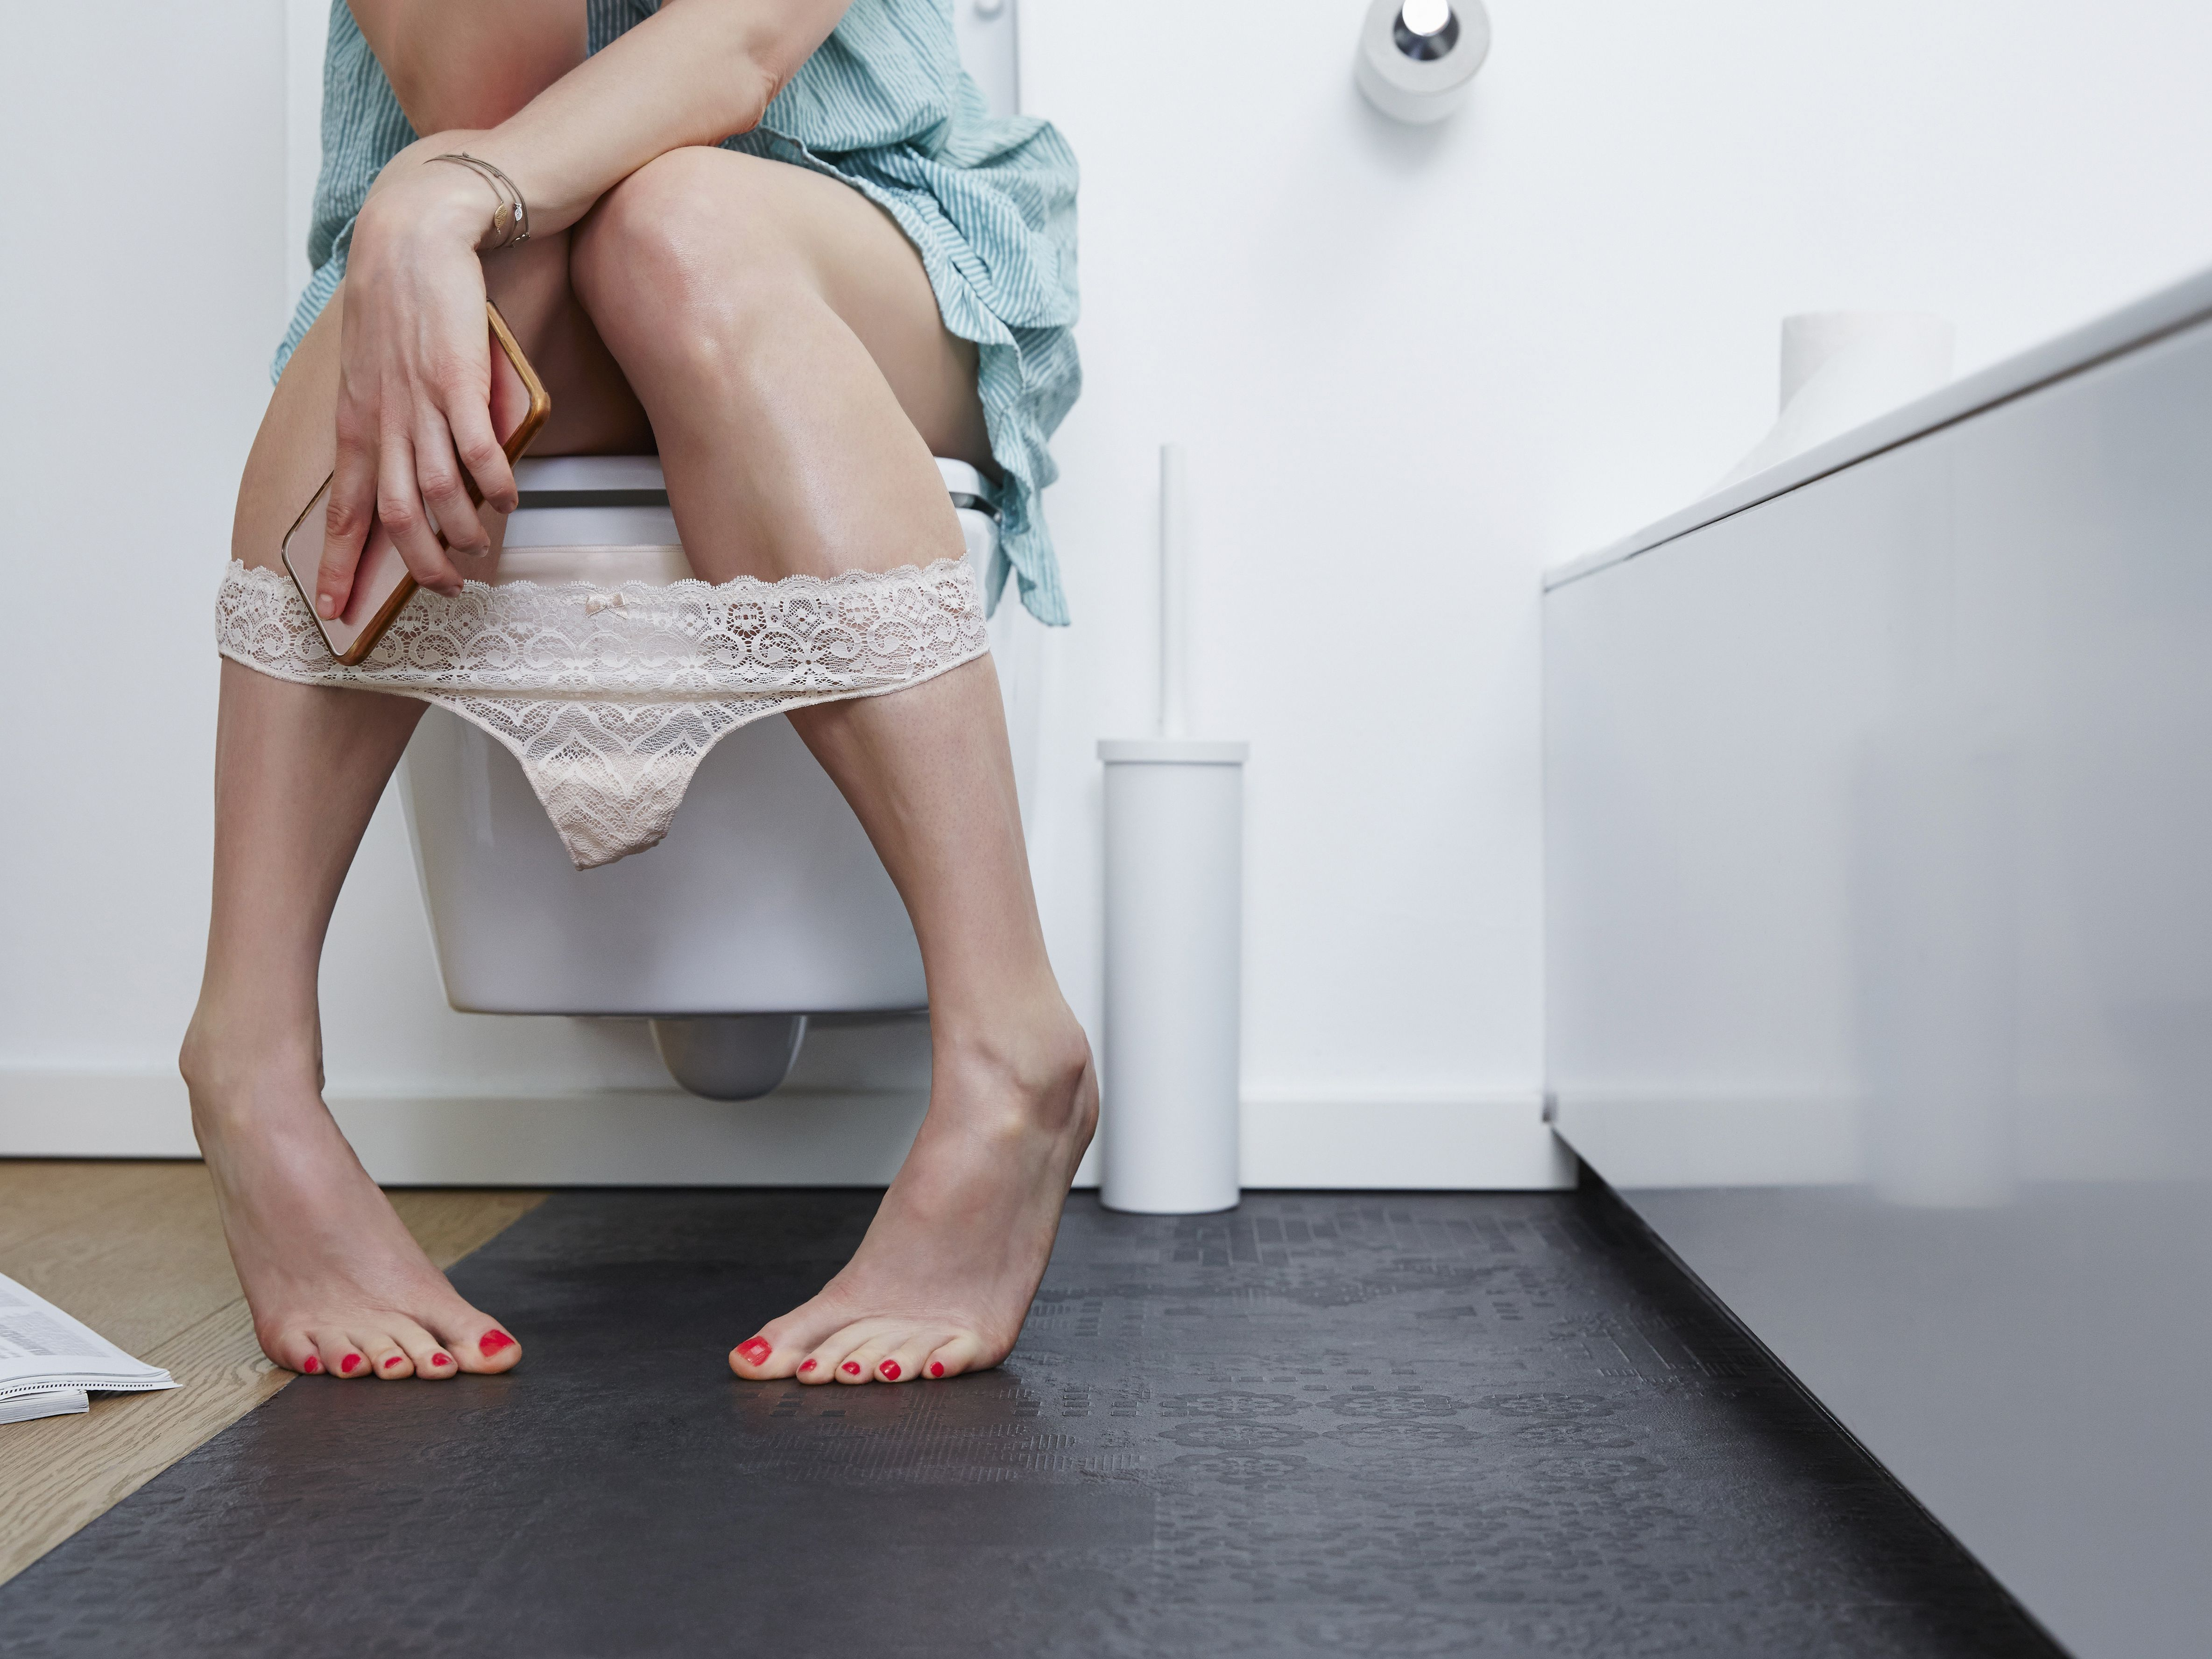 Passing blood through vagina with bowel movement